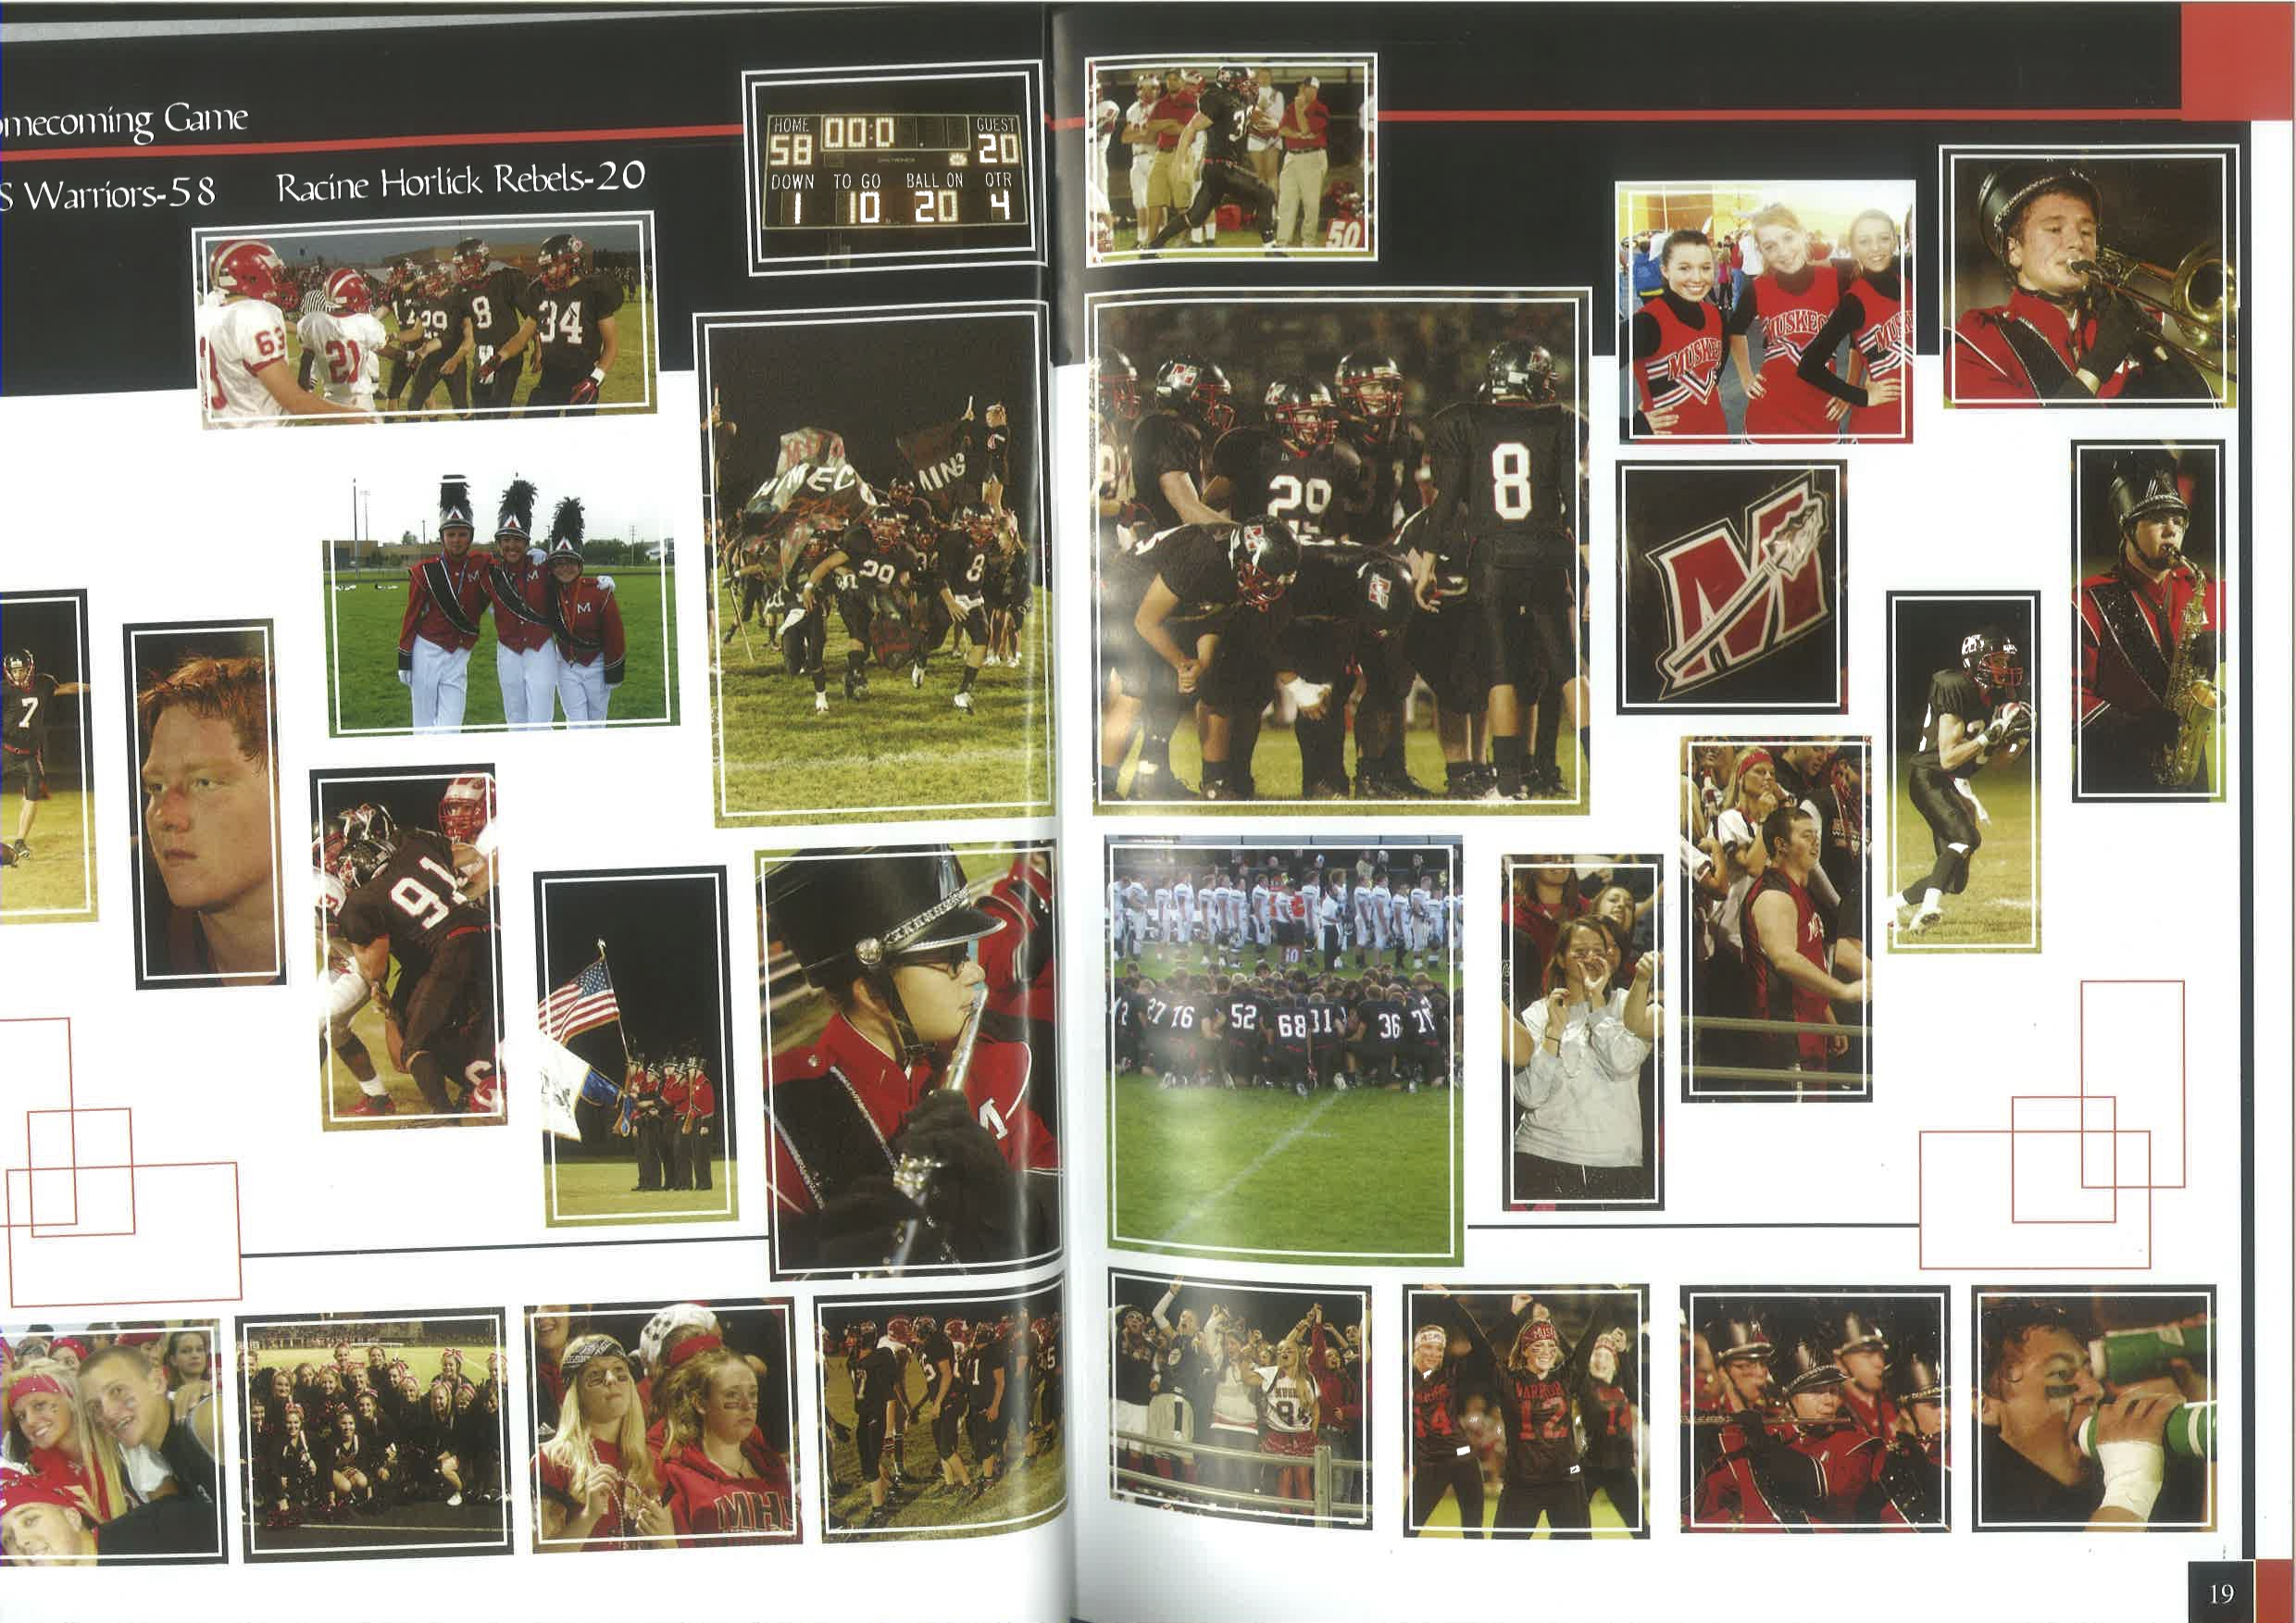 2011_Yearbook_10.jpg